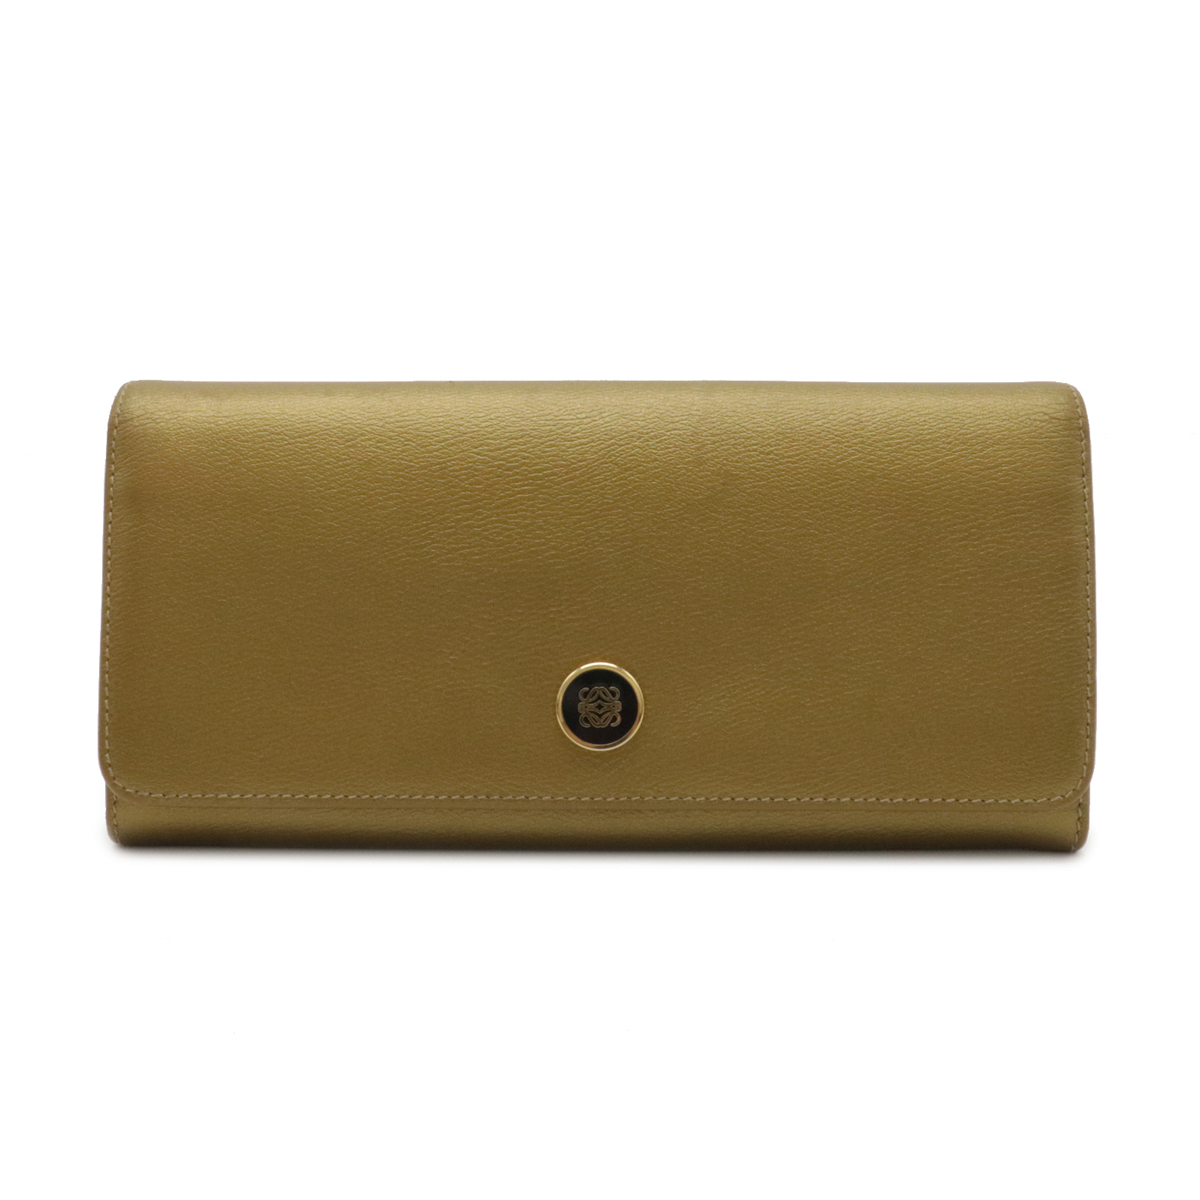 LOEWE Anagram 2-fold Long Wallet Two-folded Purse Leather Gold Gold Gold Bra